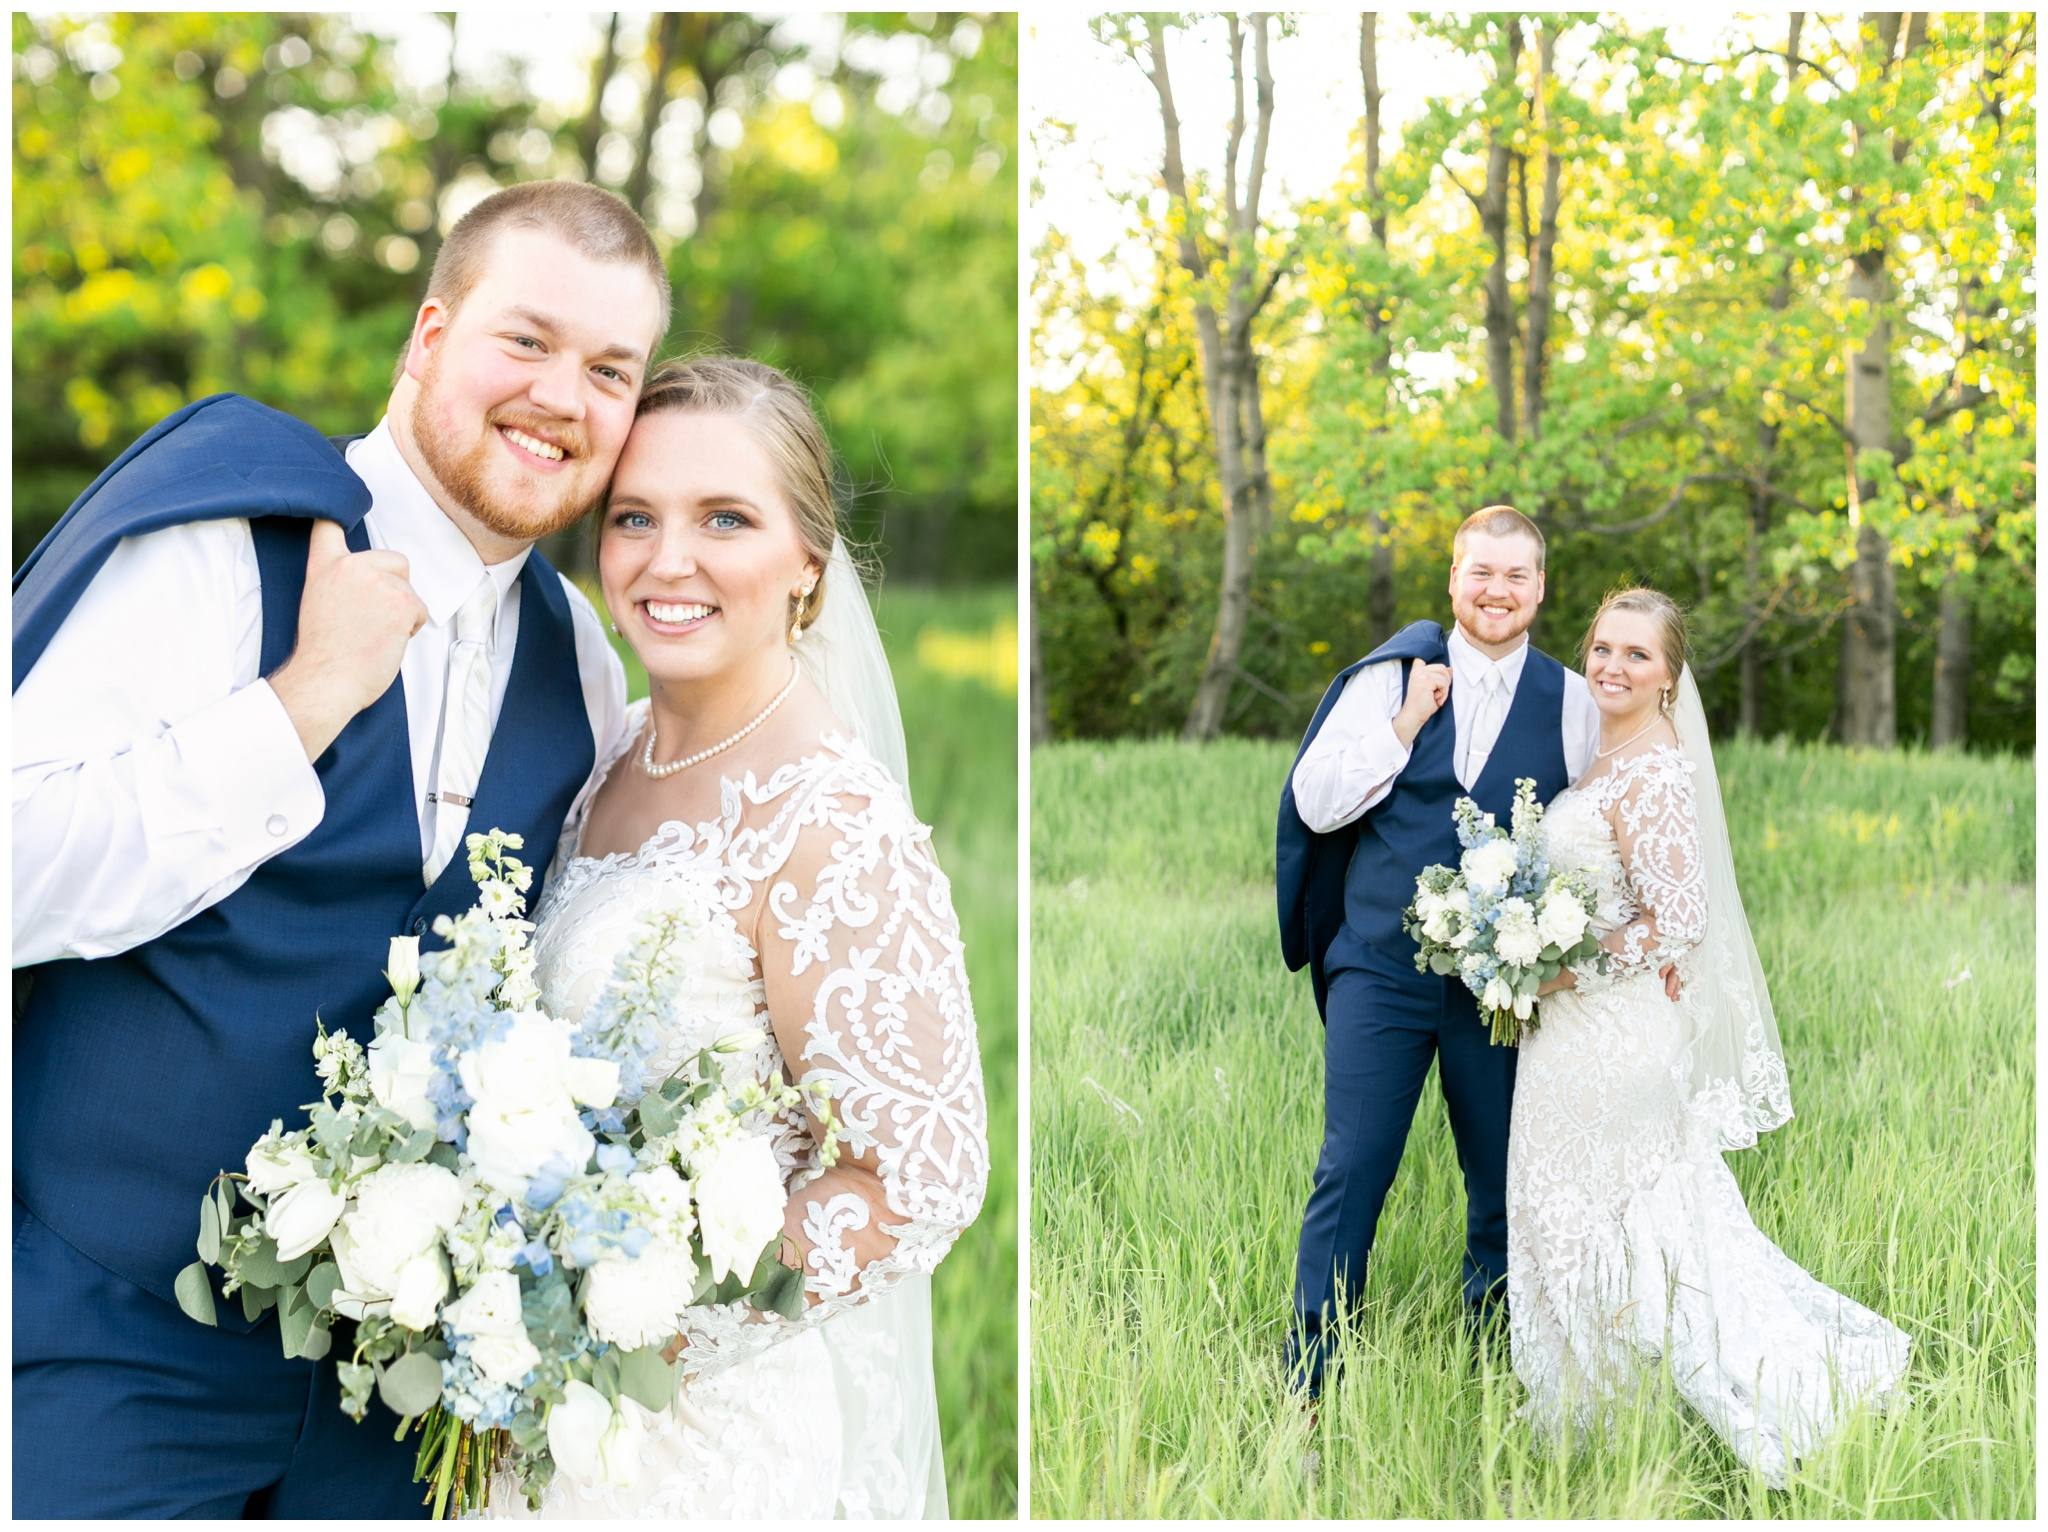 vennebu_hill_baraboo_wisconsin_wedding_madison_wisconsin_wedding_photographers_3060.jpg